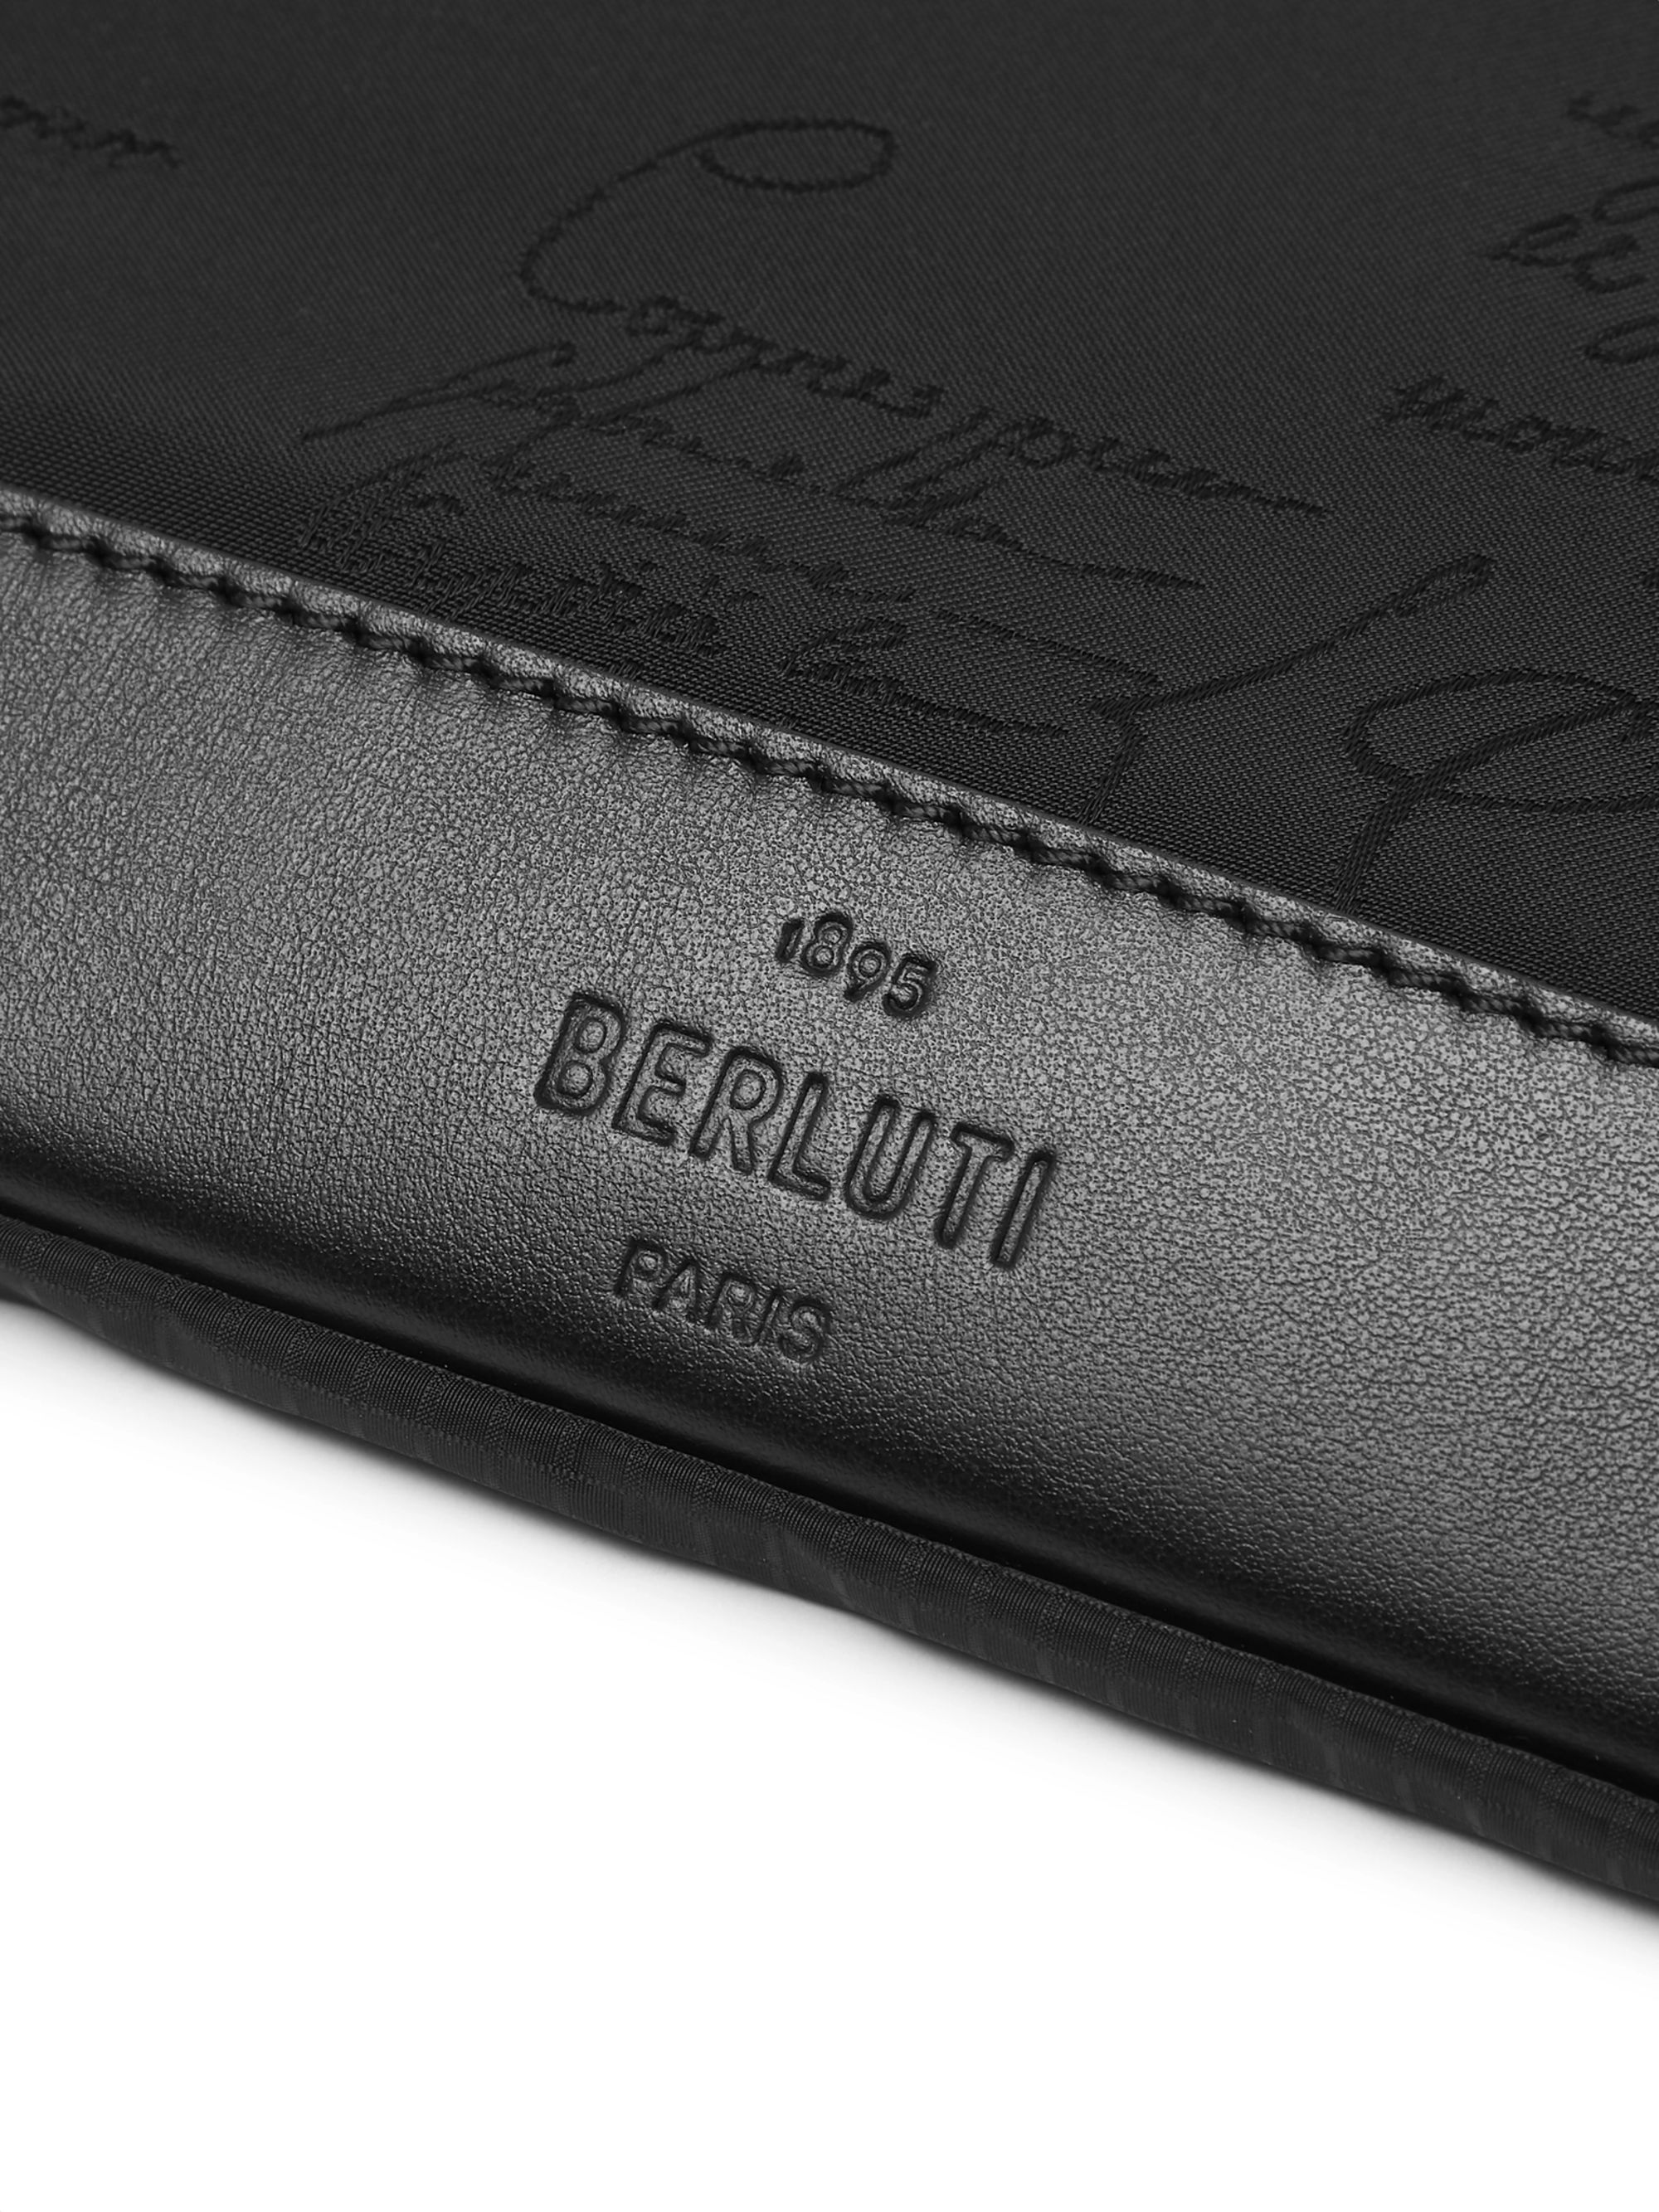 Berluti Scritto Leather-Trimmed Nylon Zip-Around Pouch